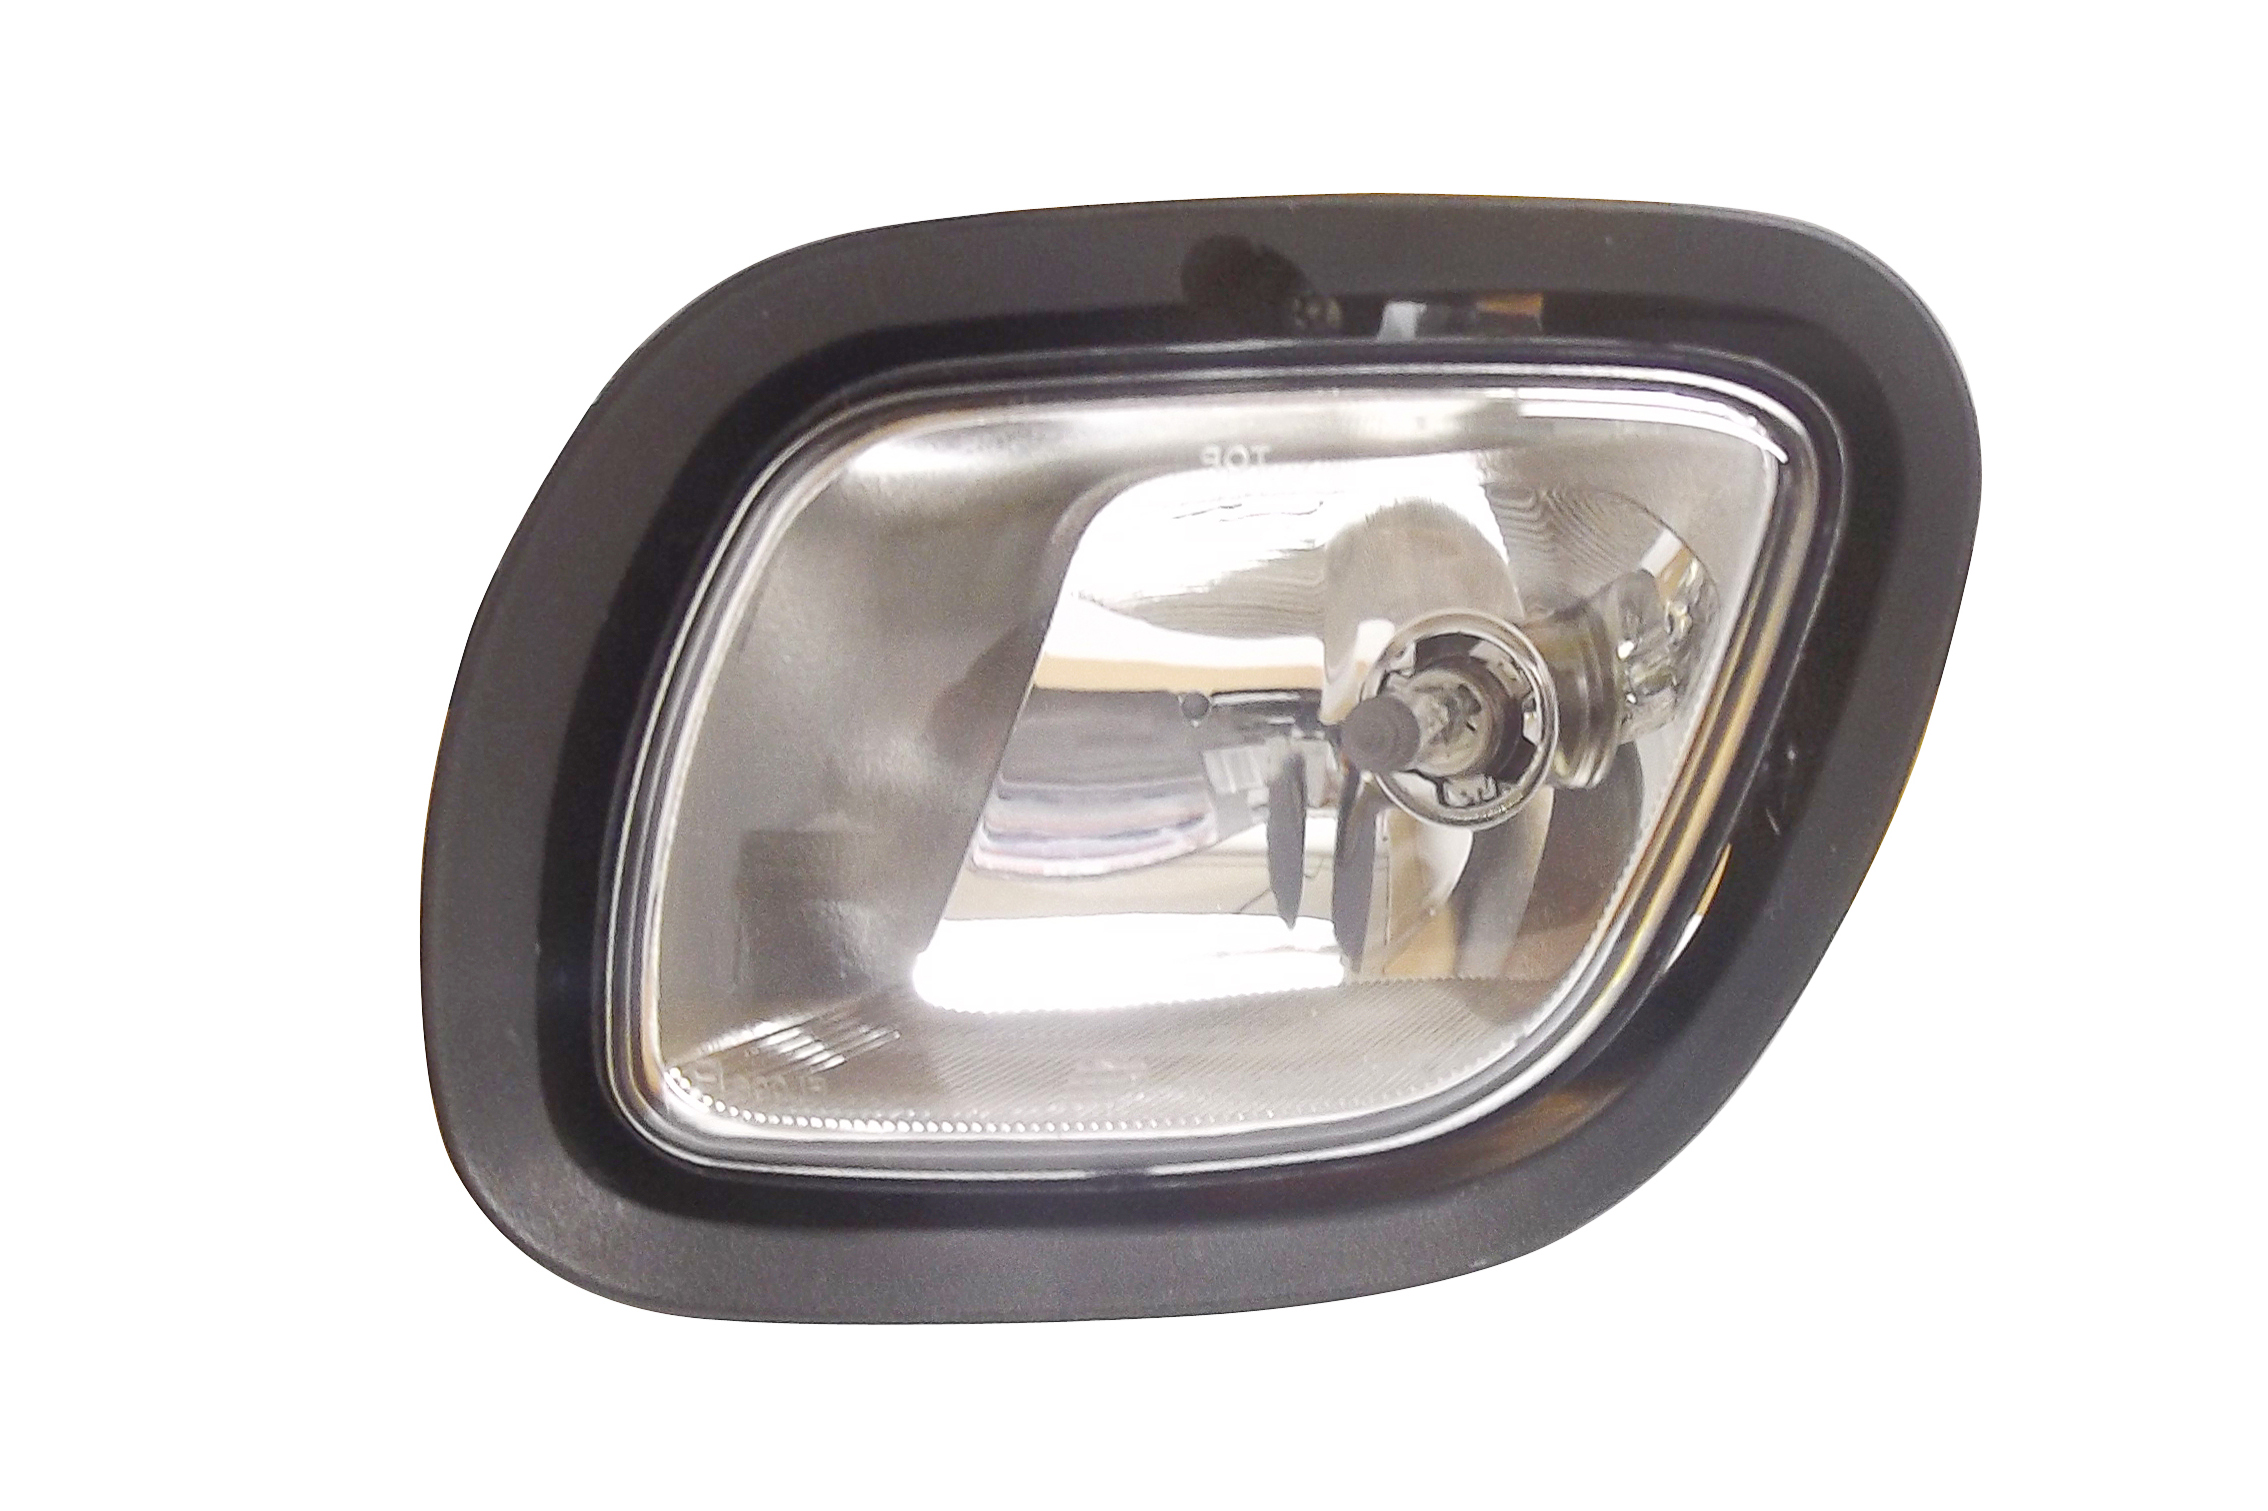 2008 to 2014 Freightliner Cascadia drivers side Fog light - Front view